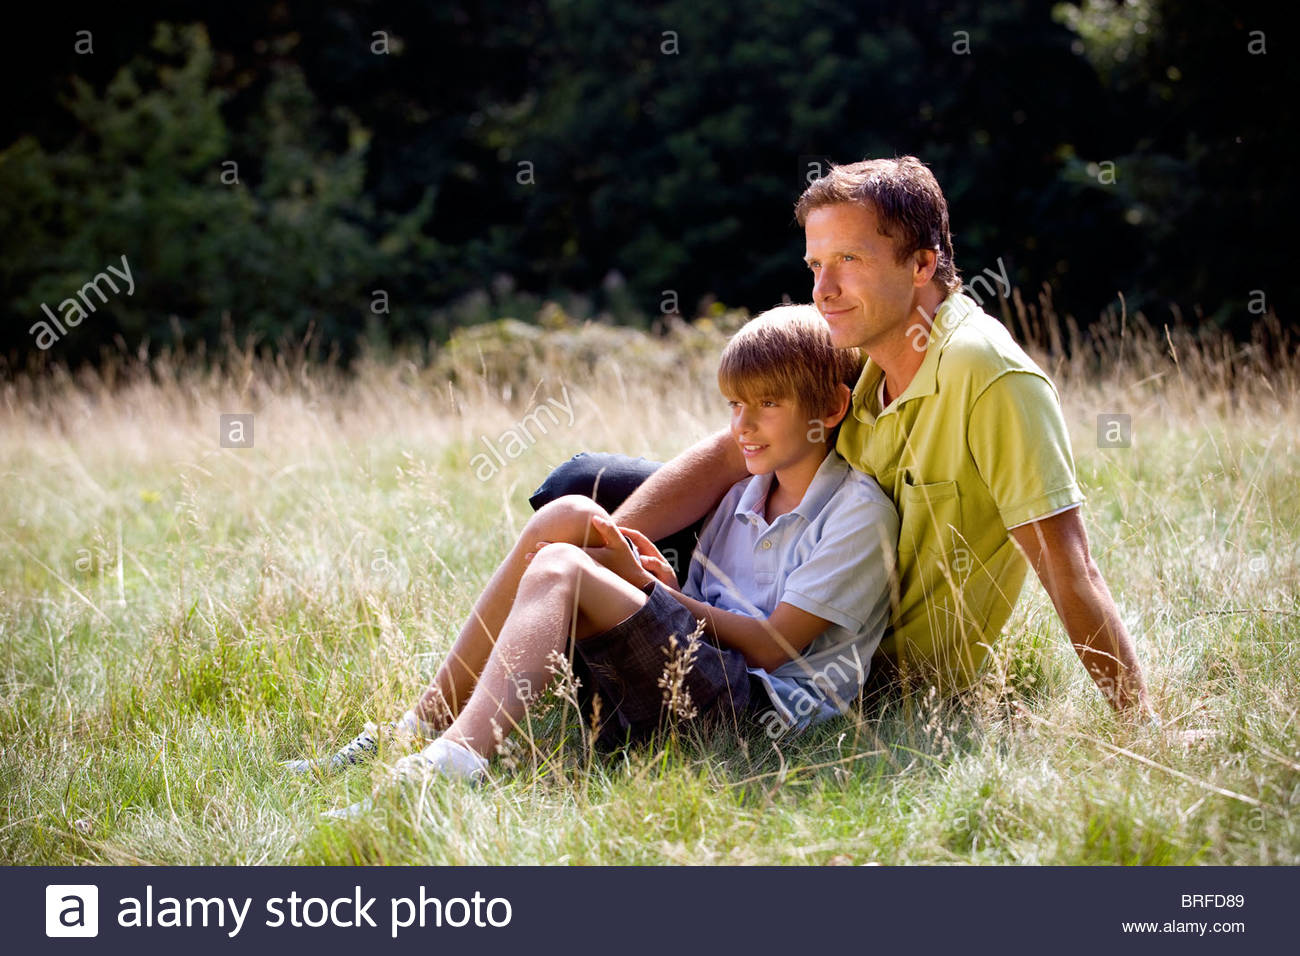 A father and son sitting on the grass - Stock Image